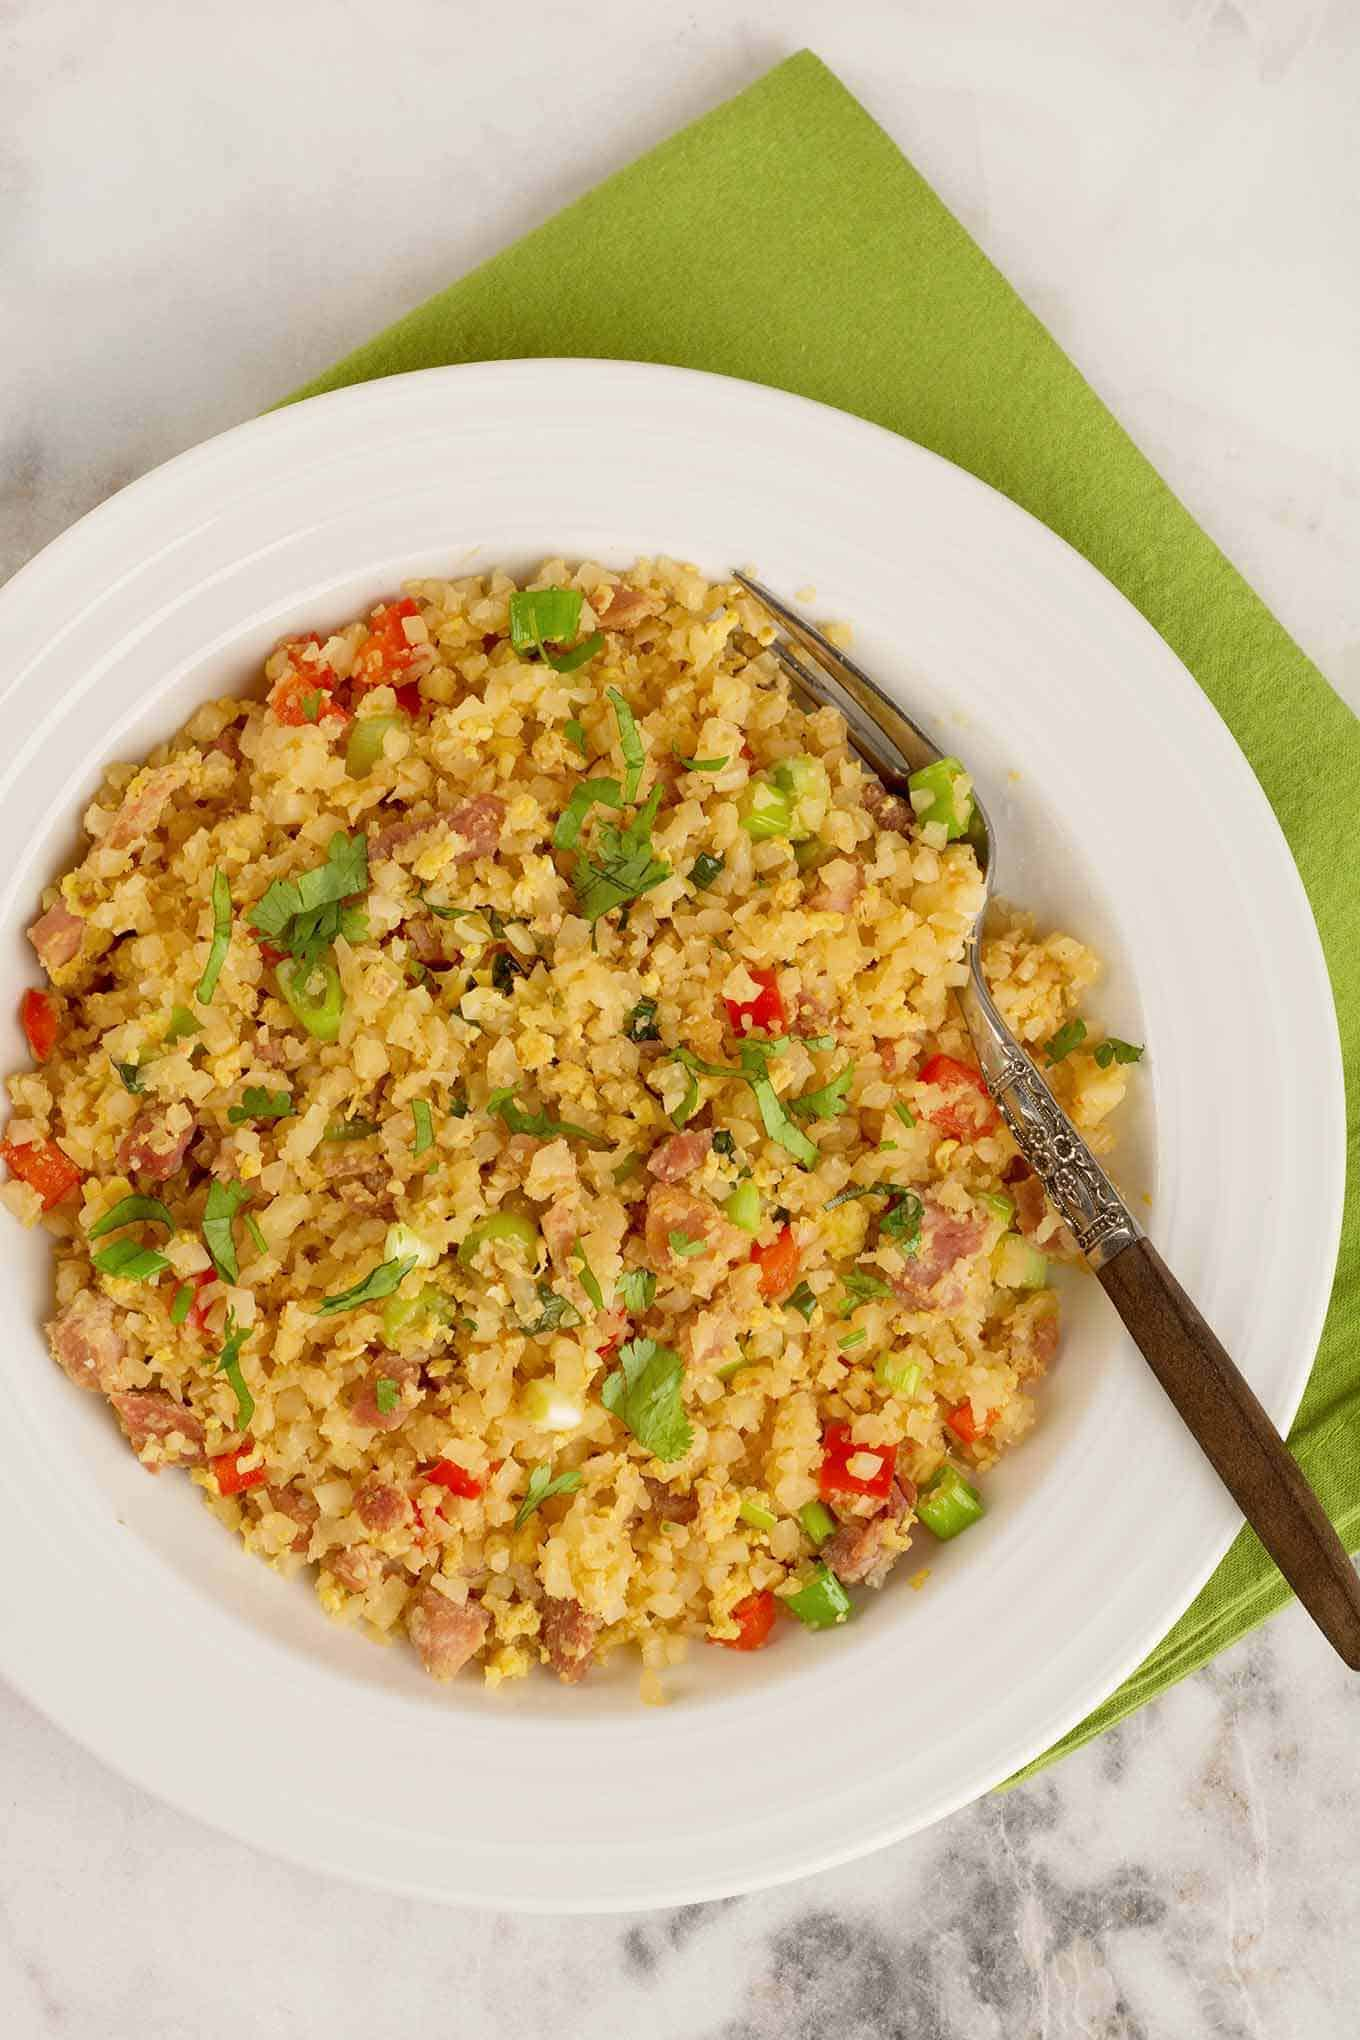 A single serving of cauliflower fried rice garnished with chopped cilantro and scallions